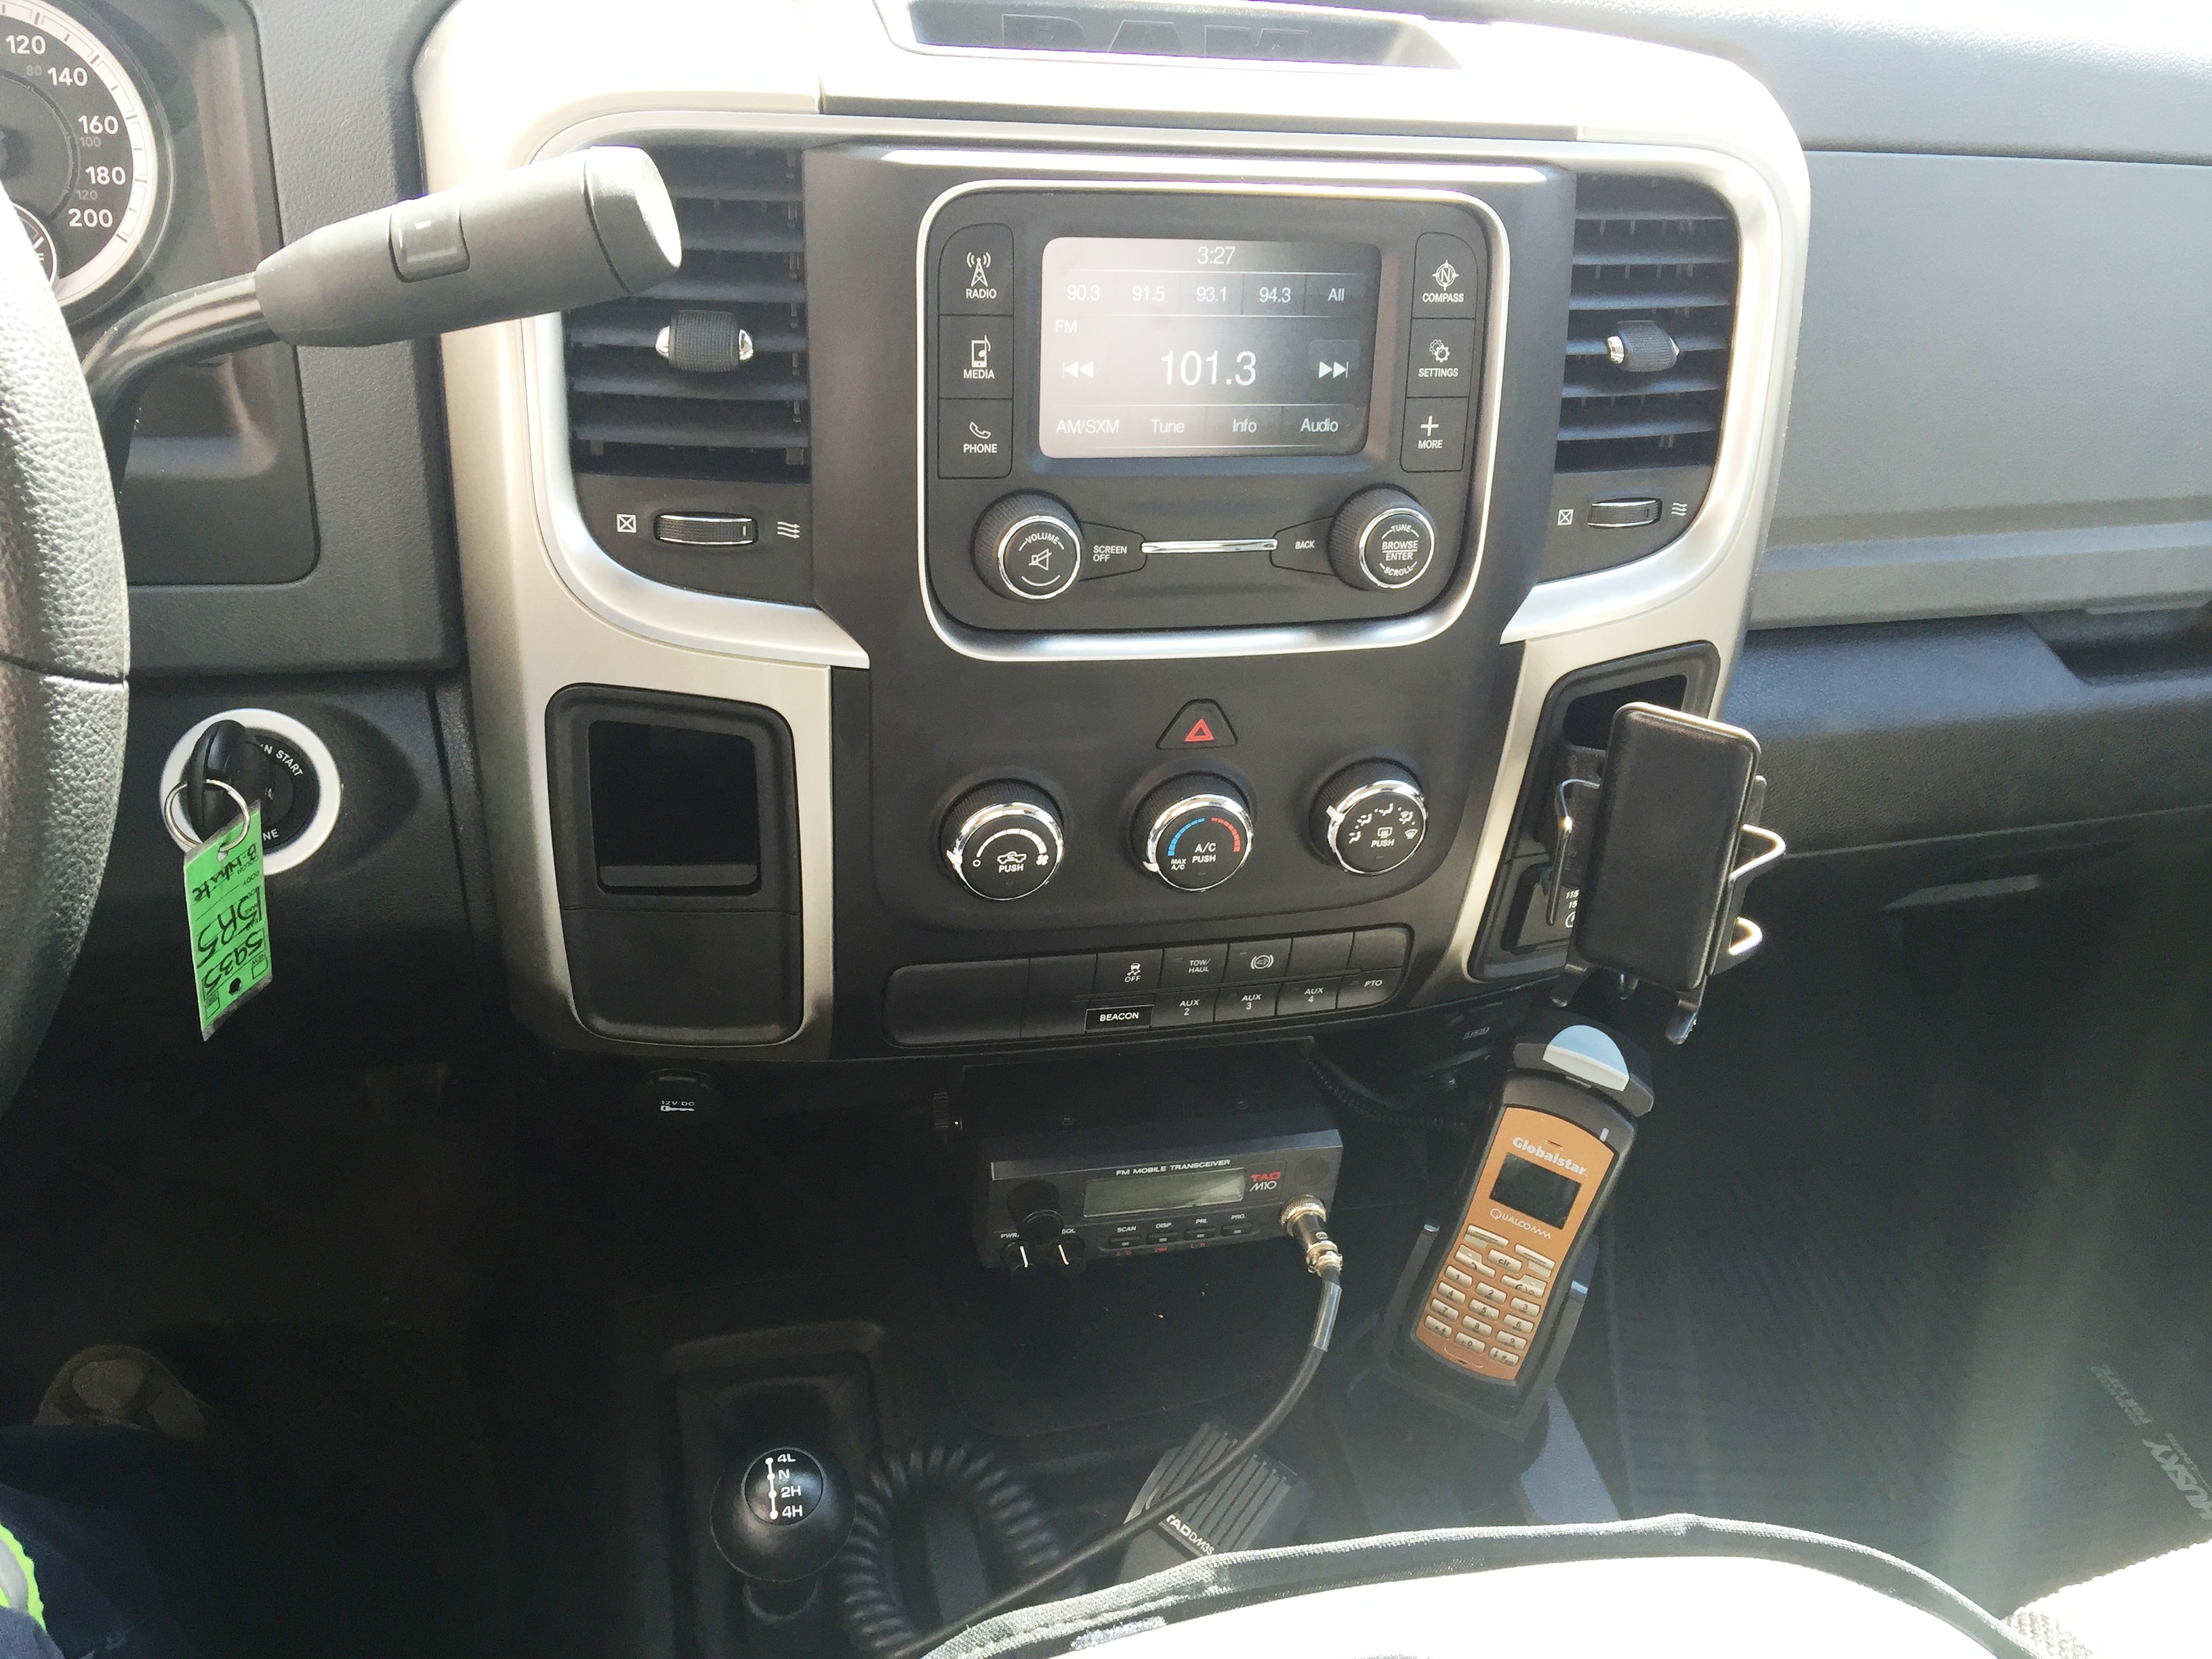 Installation of a TAD M10 and Globalstar into a 2016 Dodge Ram.